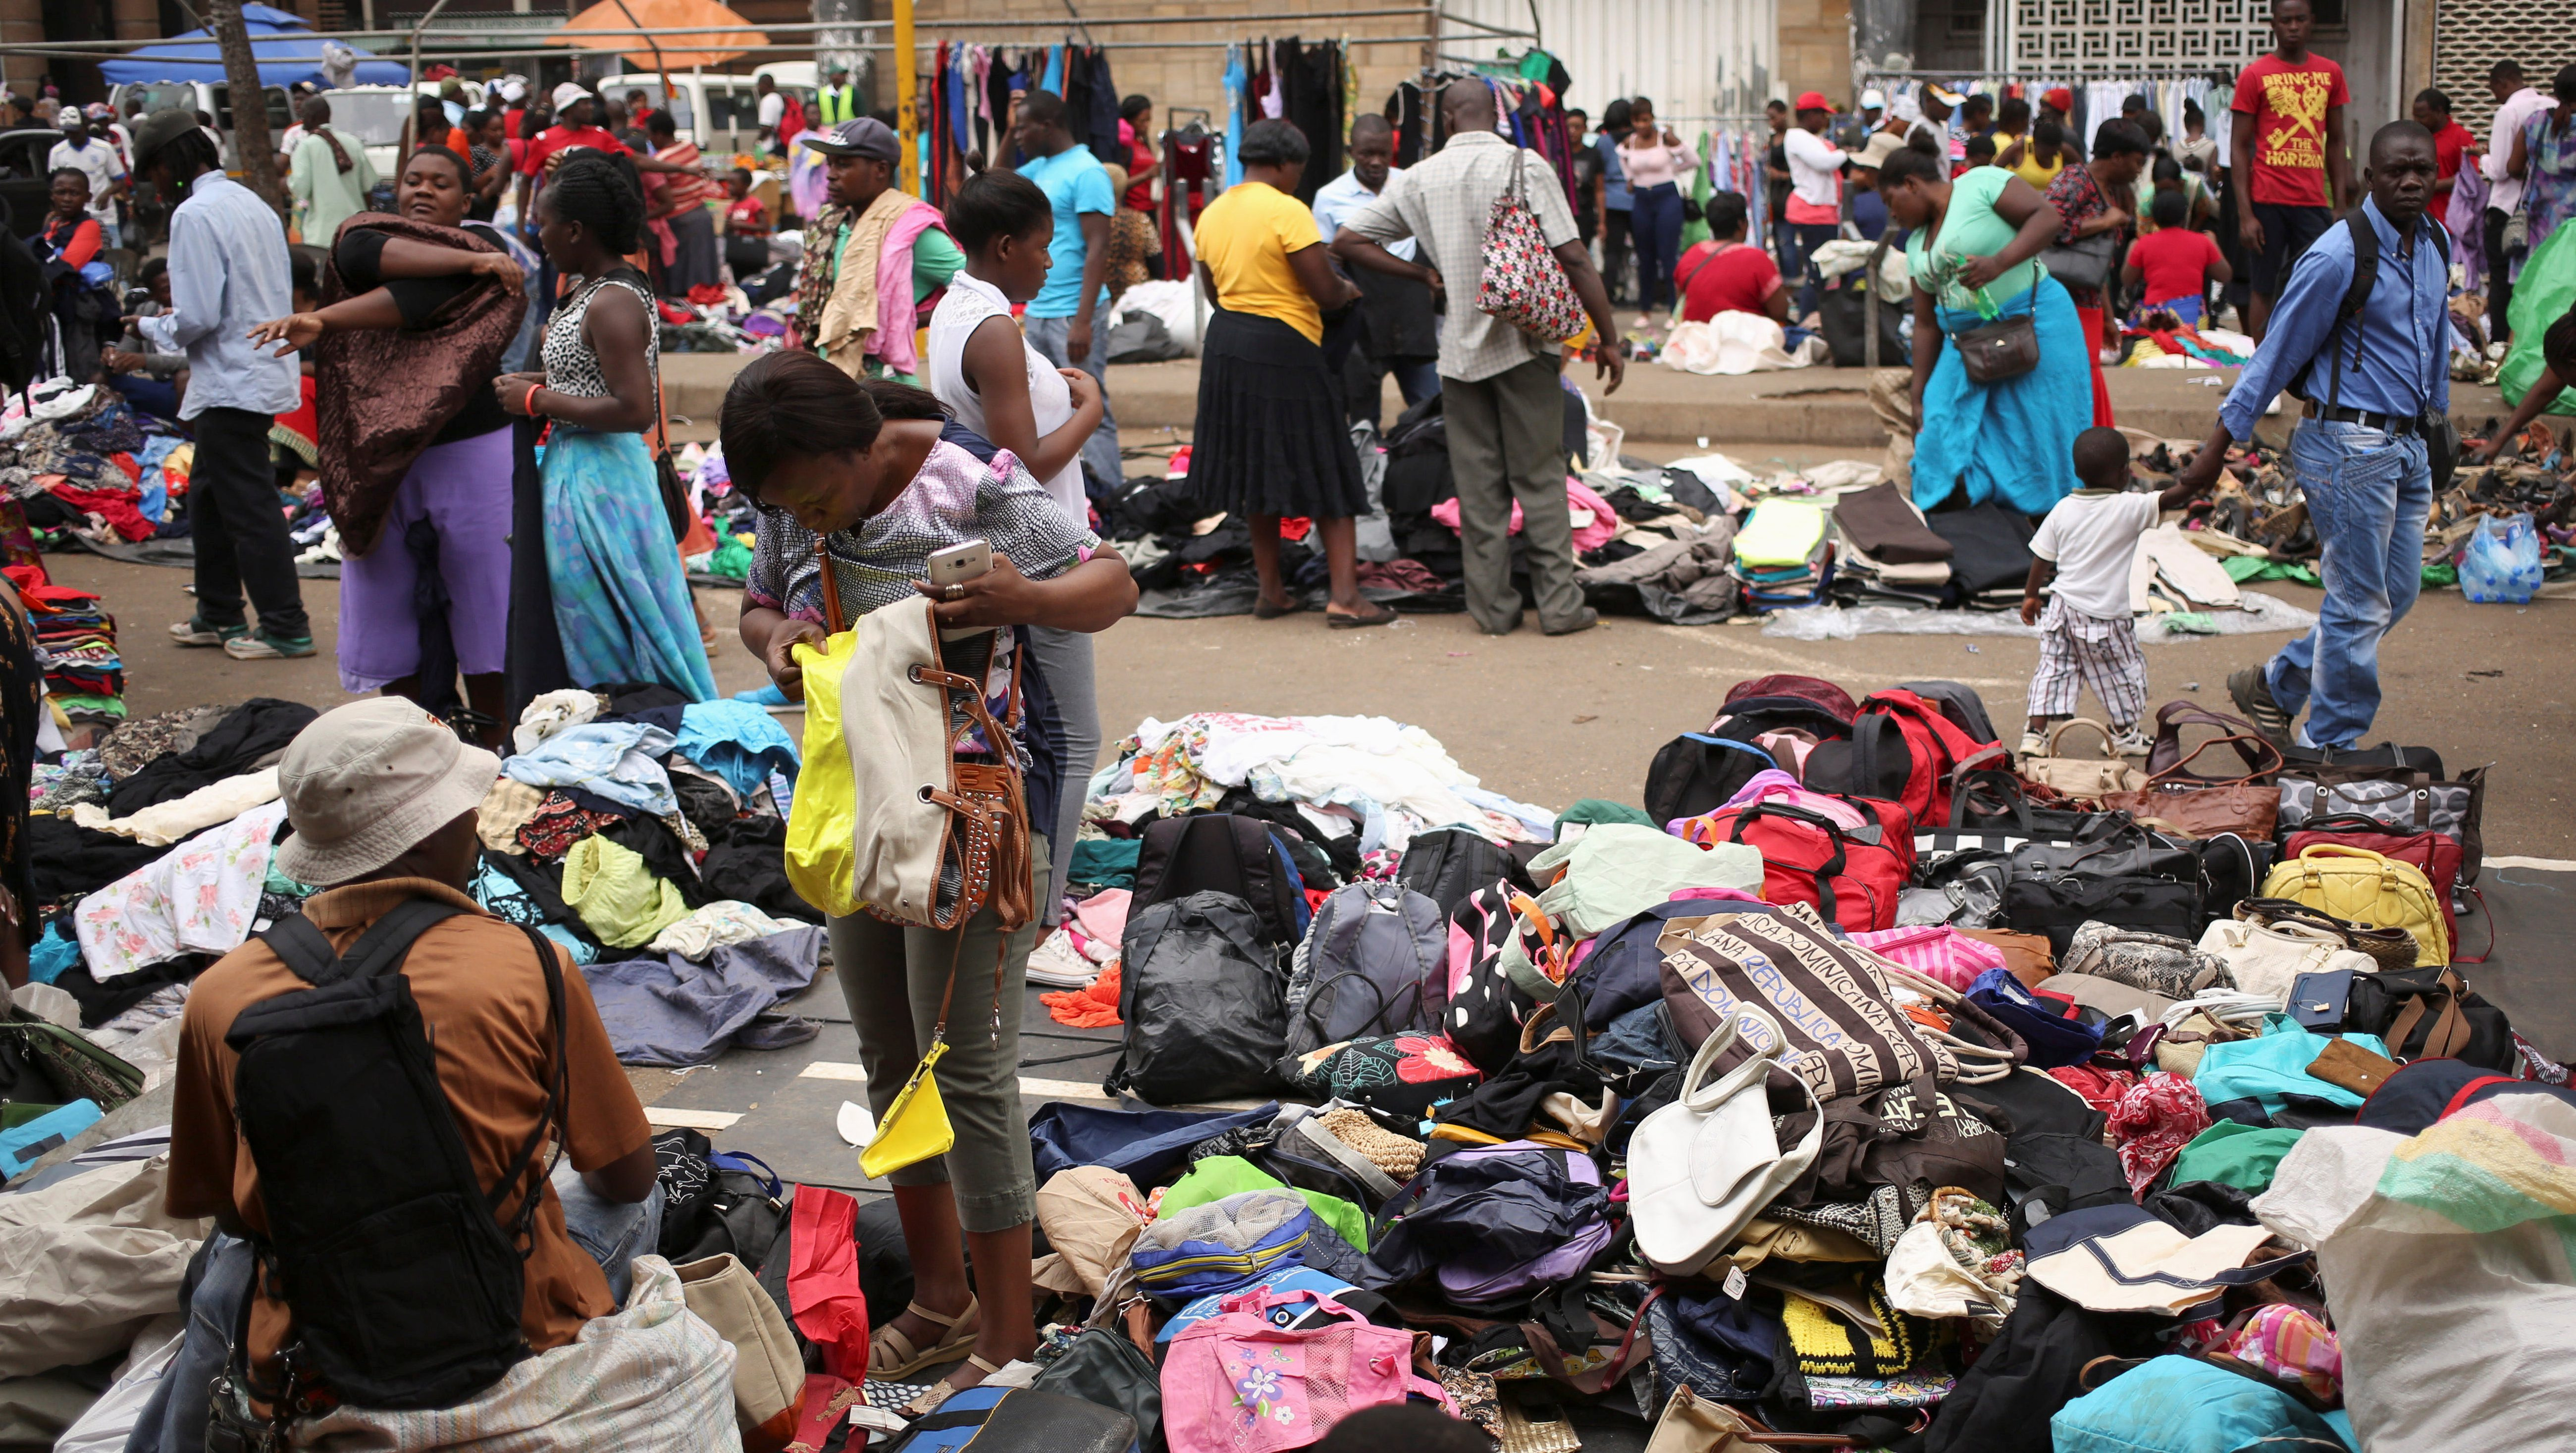 A shopper browses used clothings and bags at a market in Harare, Zimbabwe